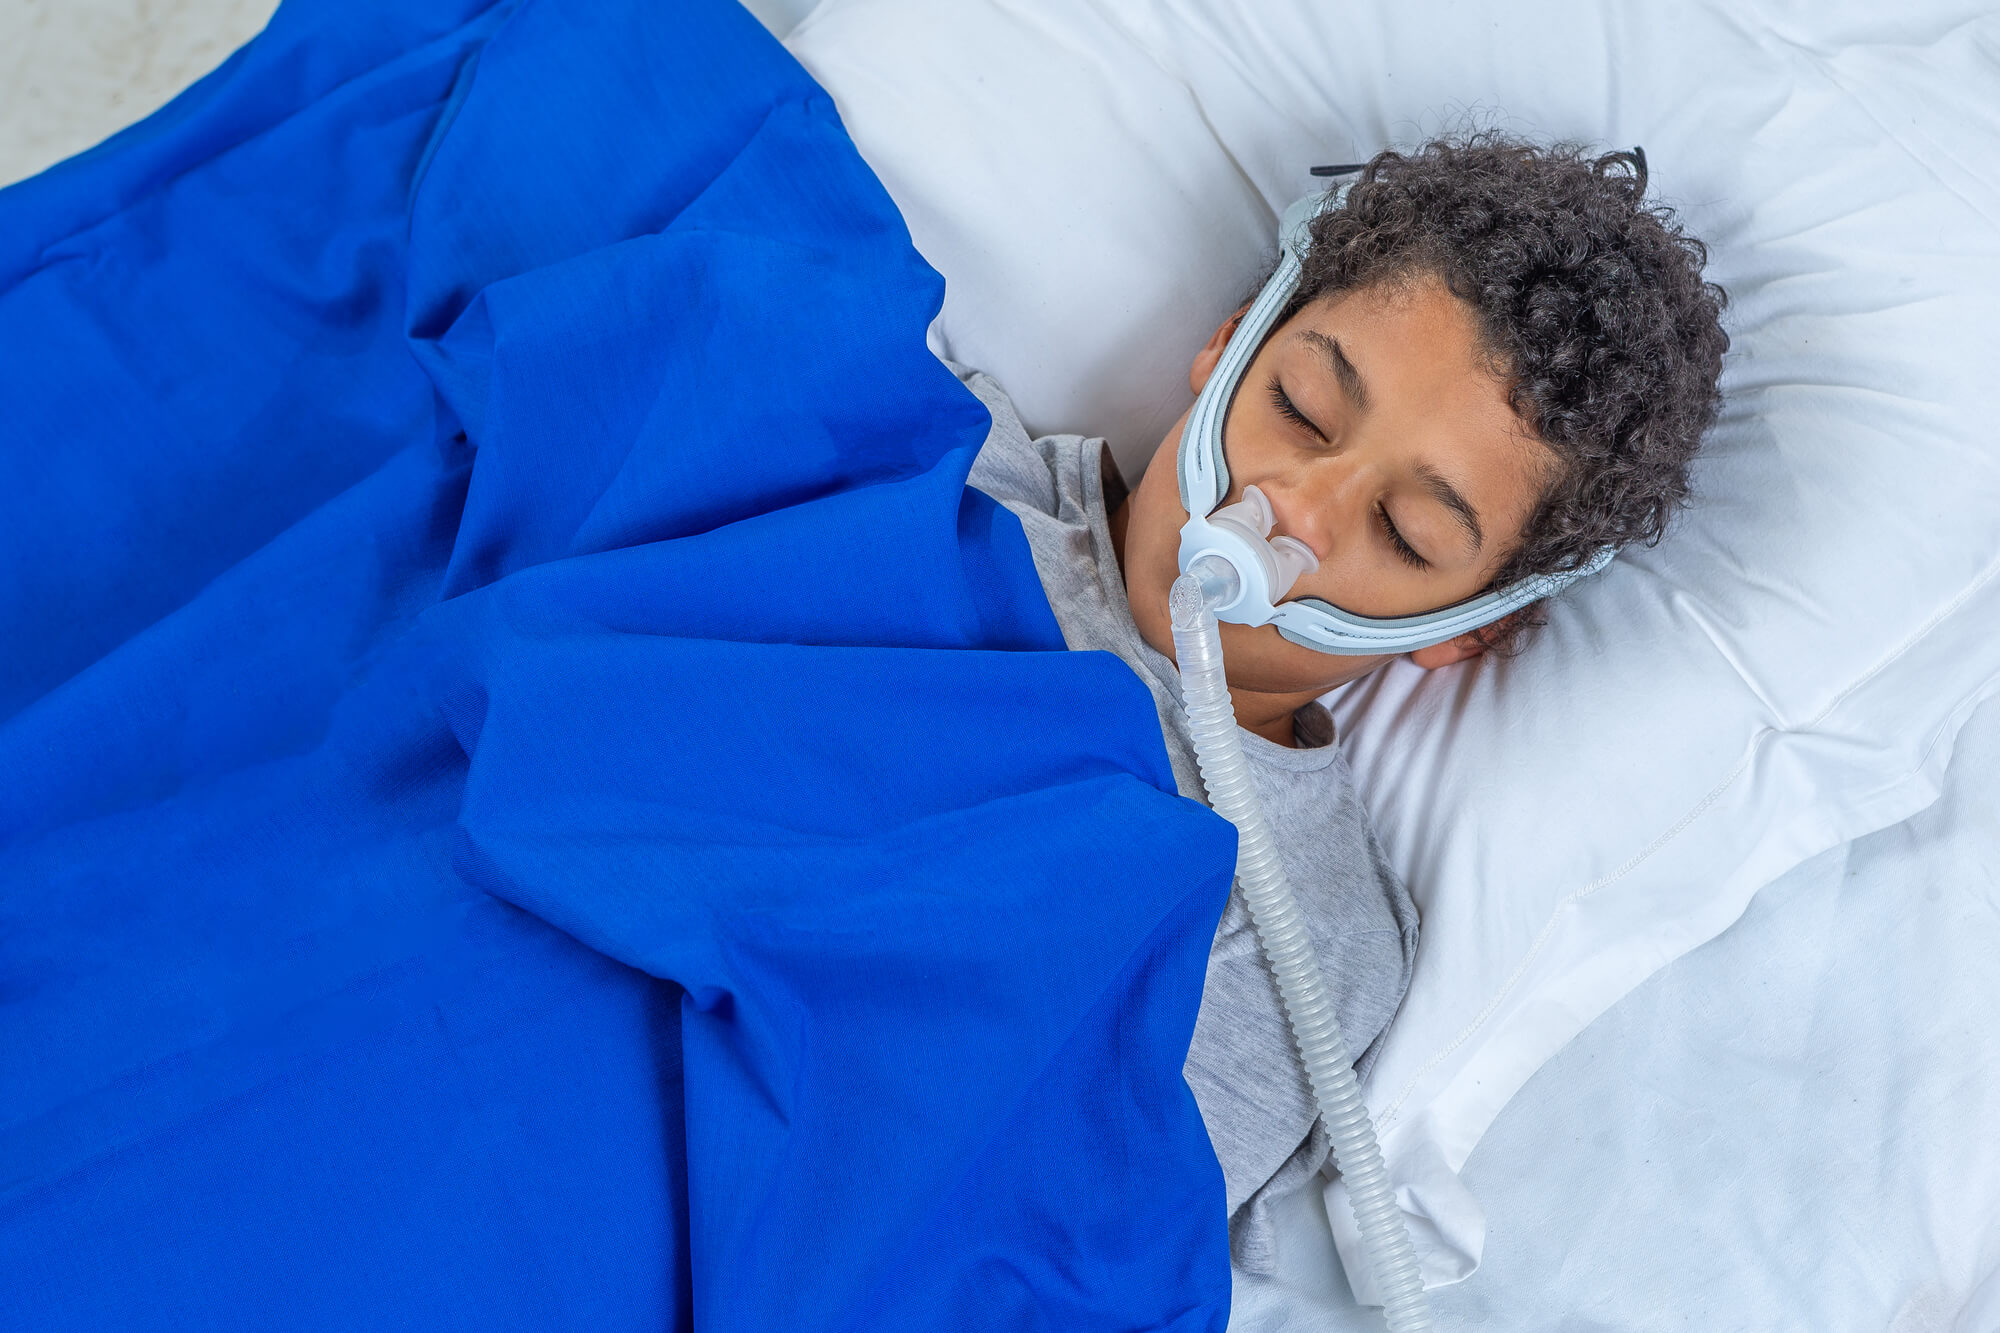 where is the best place to get treatment for sleep apnea coral springs?